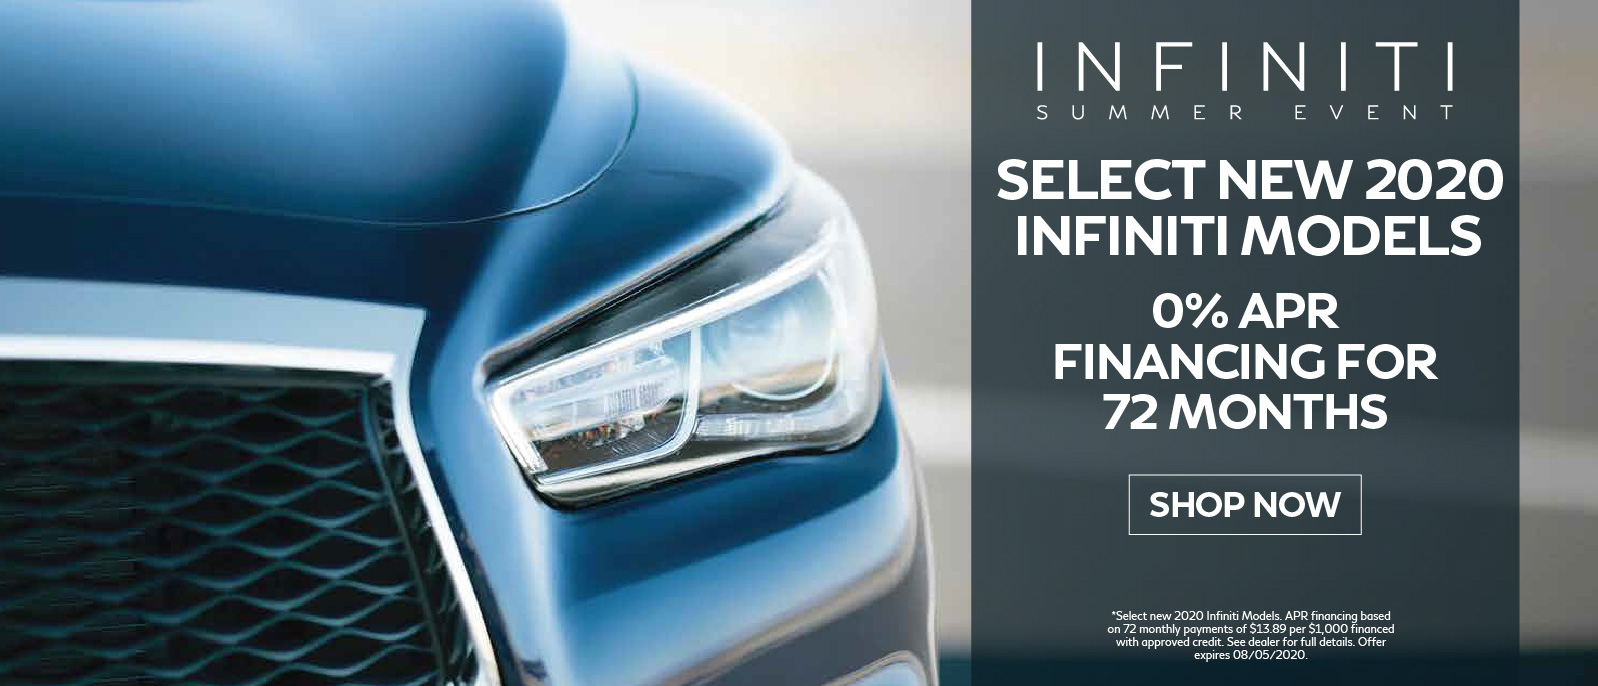 All new 2020 INFINITI models and 2019 QX30, Q70, Q70L Get 0% APR Financing for 72 mos. and defer payments for 90 days. Click to begin shopping.